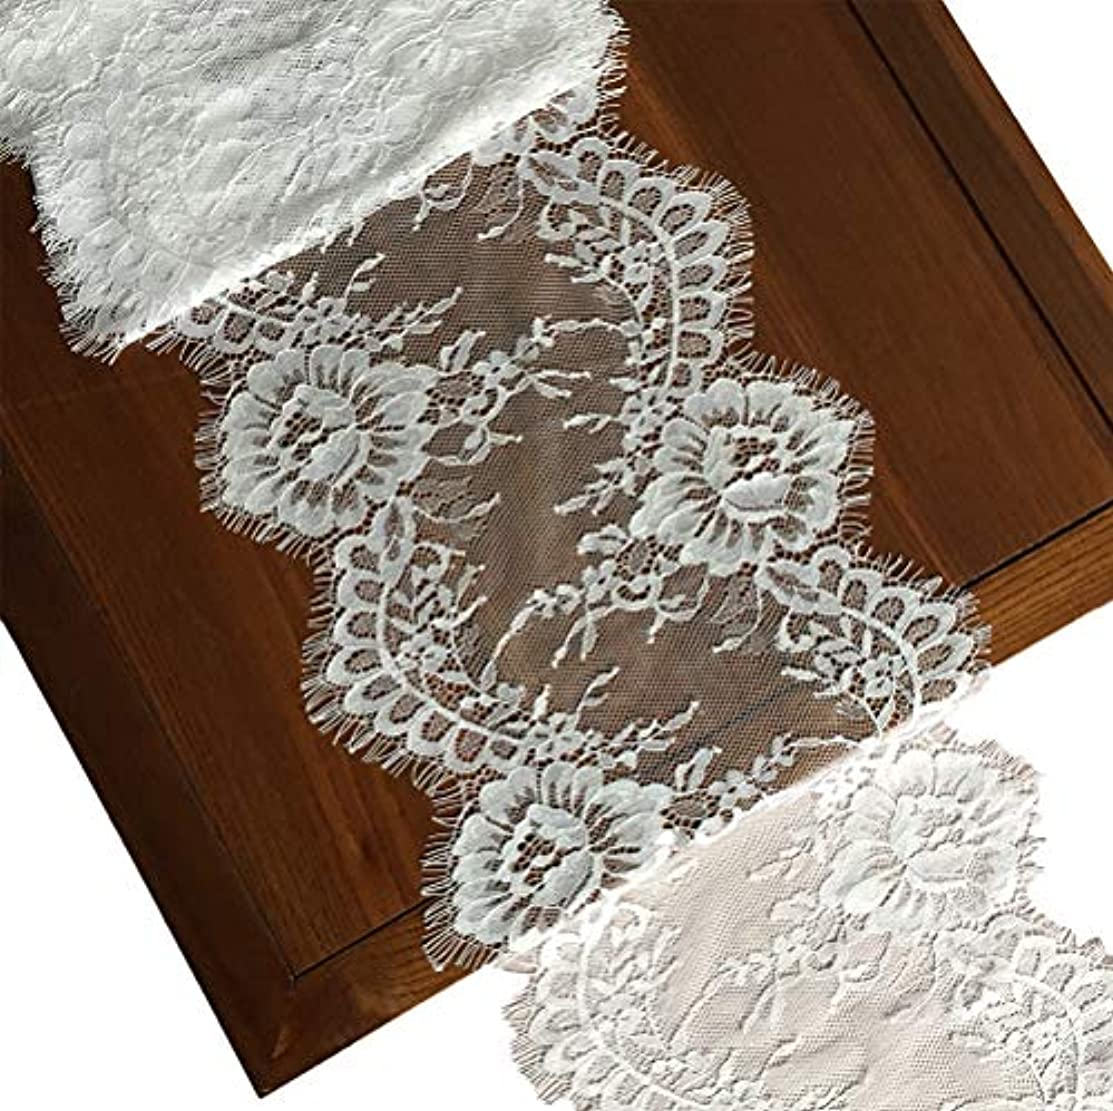 LaceRealm 9 Inch Wide Eyelash Lace Fabric Floral Pattern Lace Trims for Sewing Dress Home Decor Fabric & Textile Paints (White)